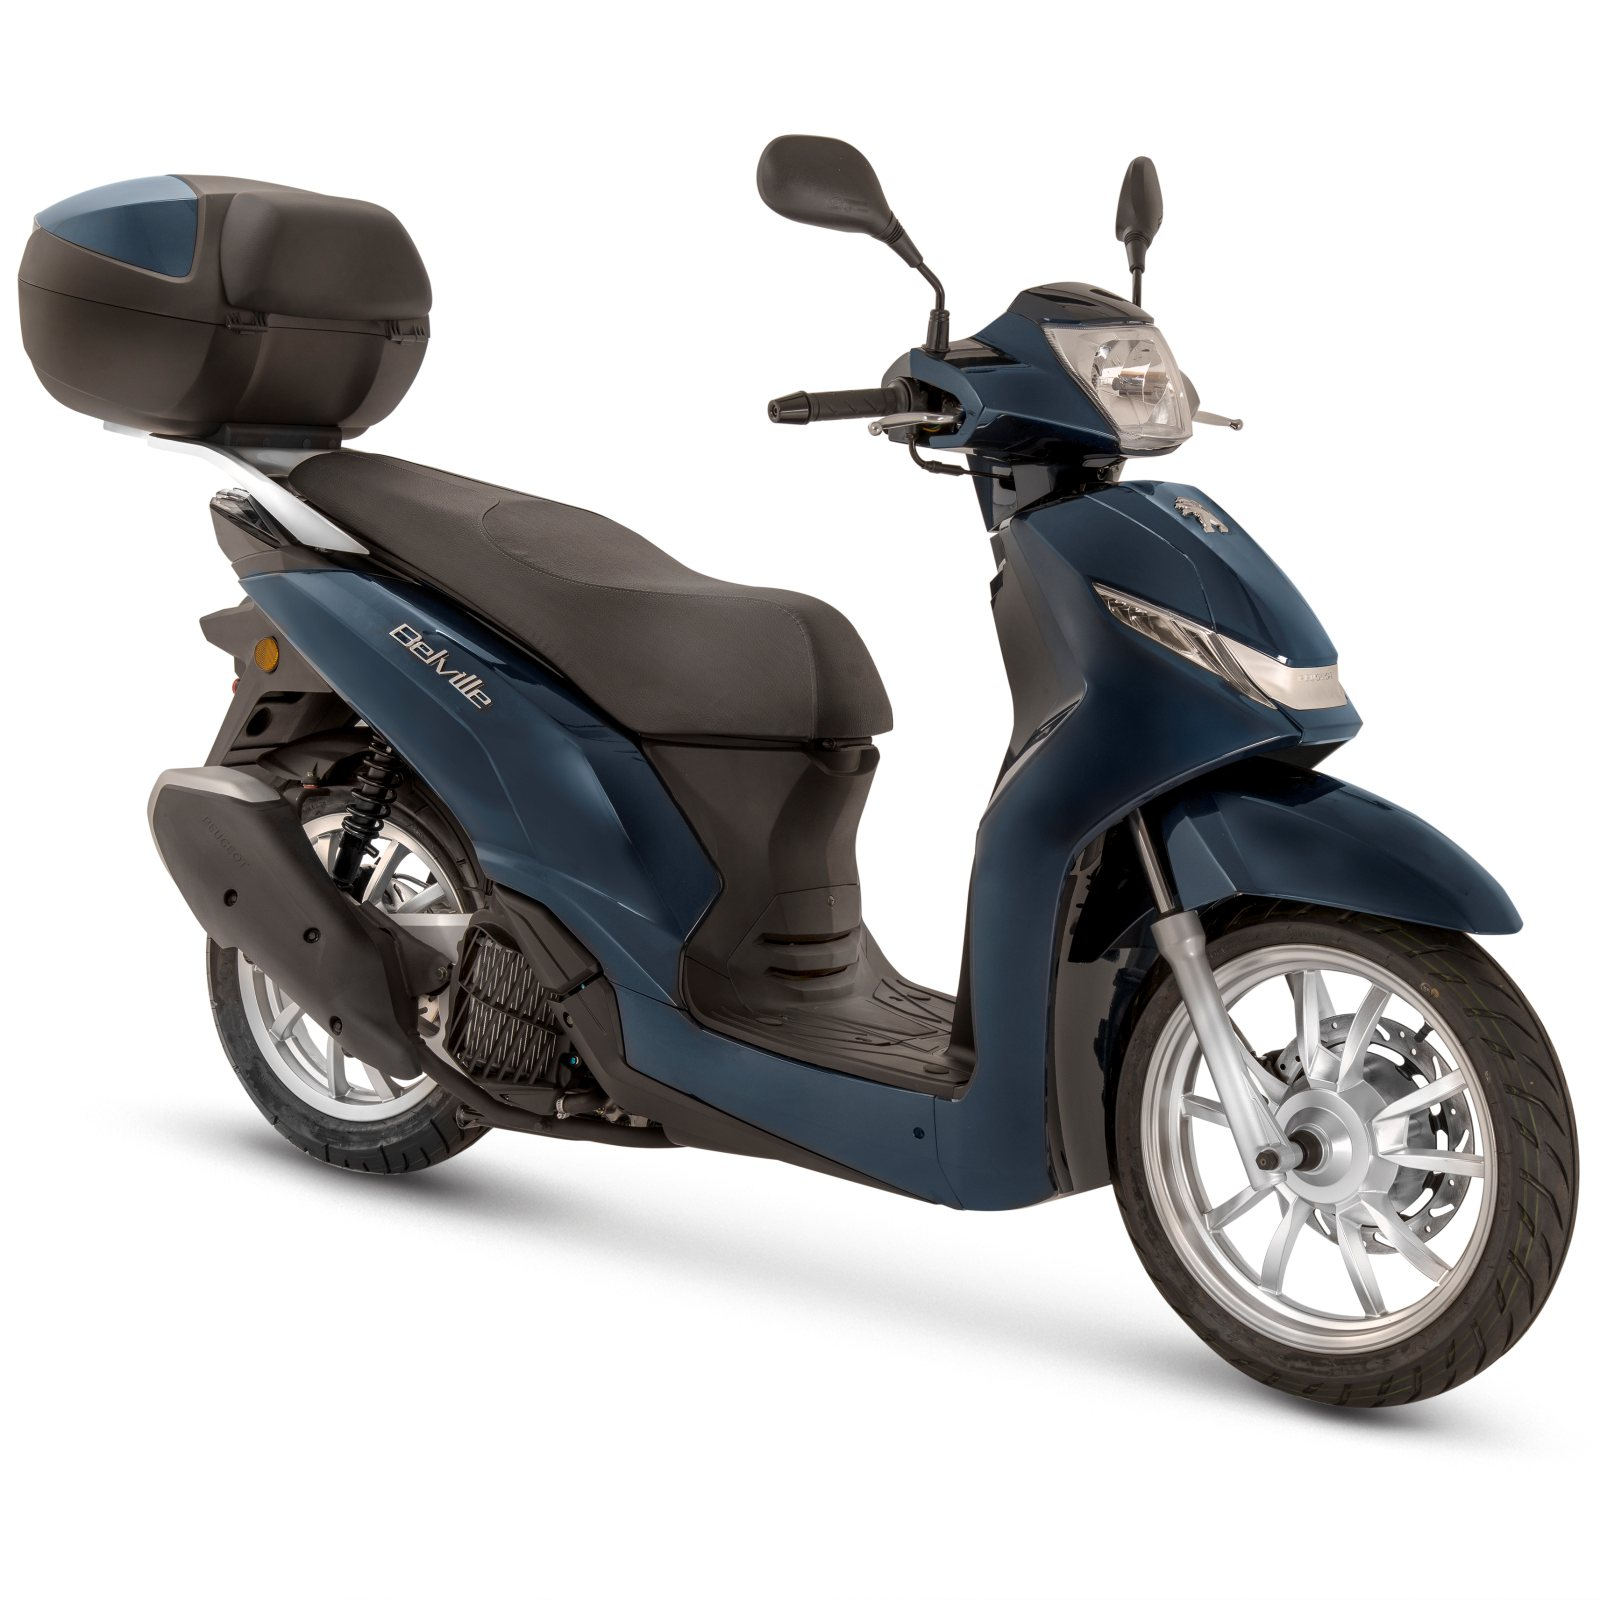 Belville 125i Allure ABS - Dark Blue